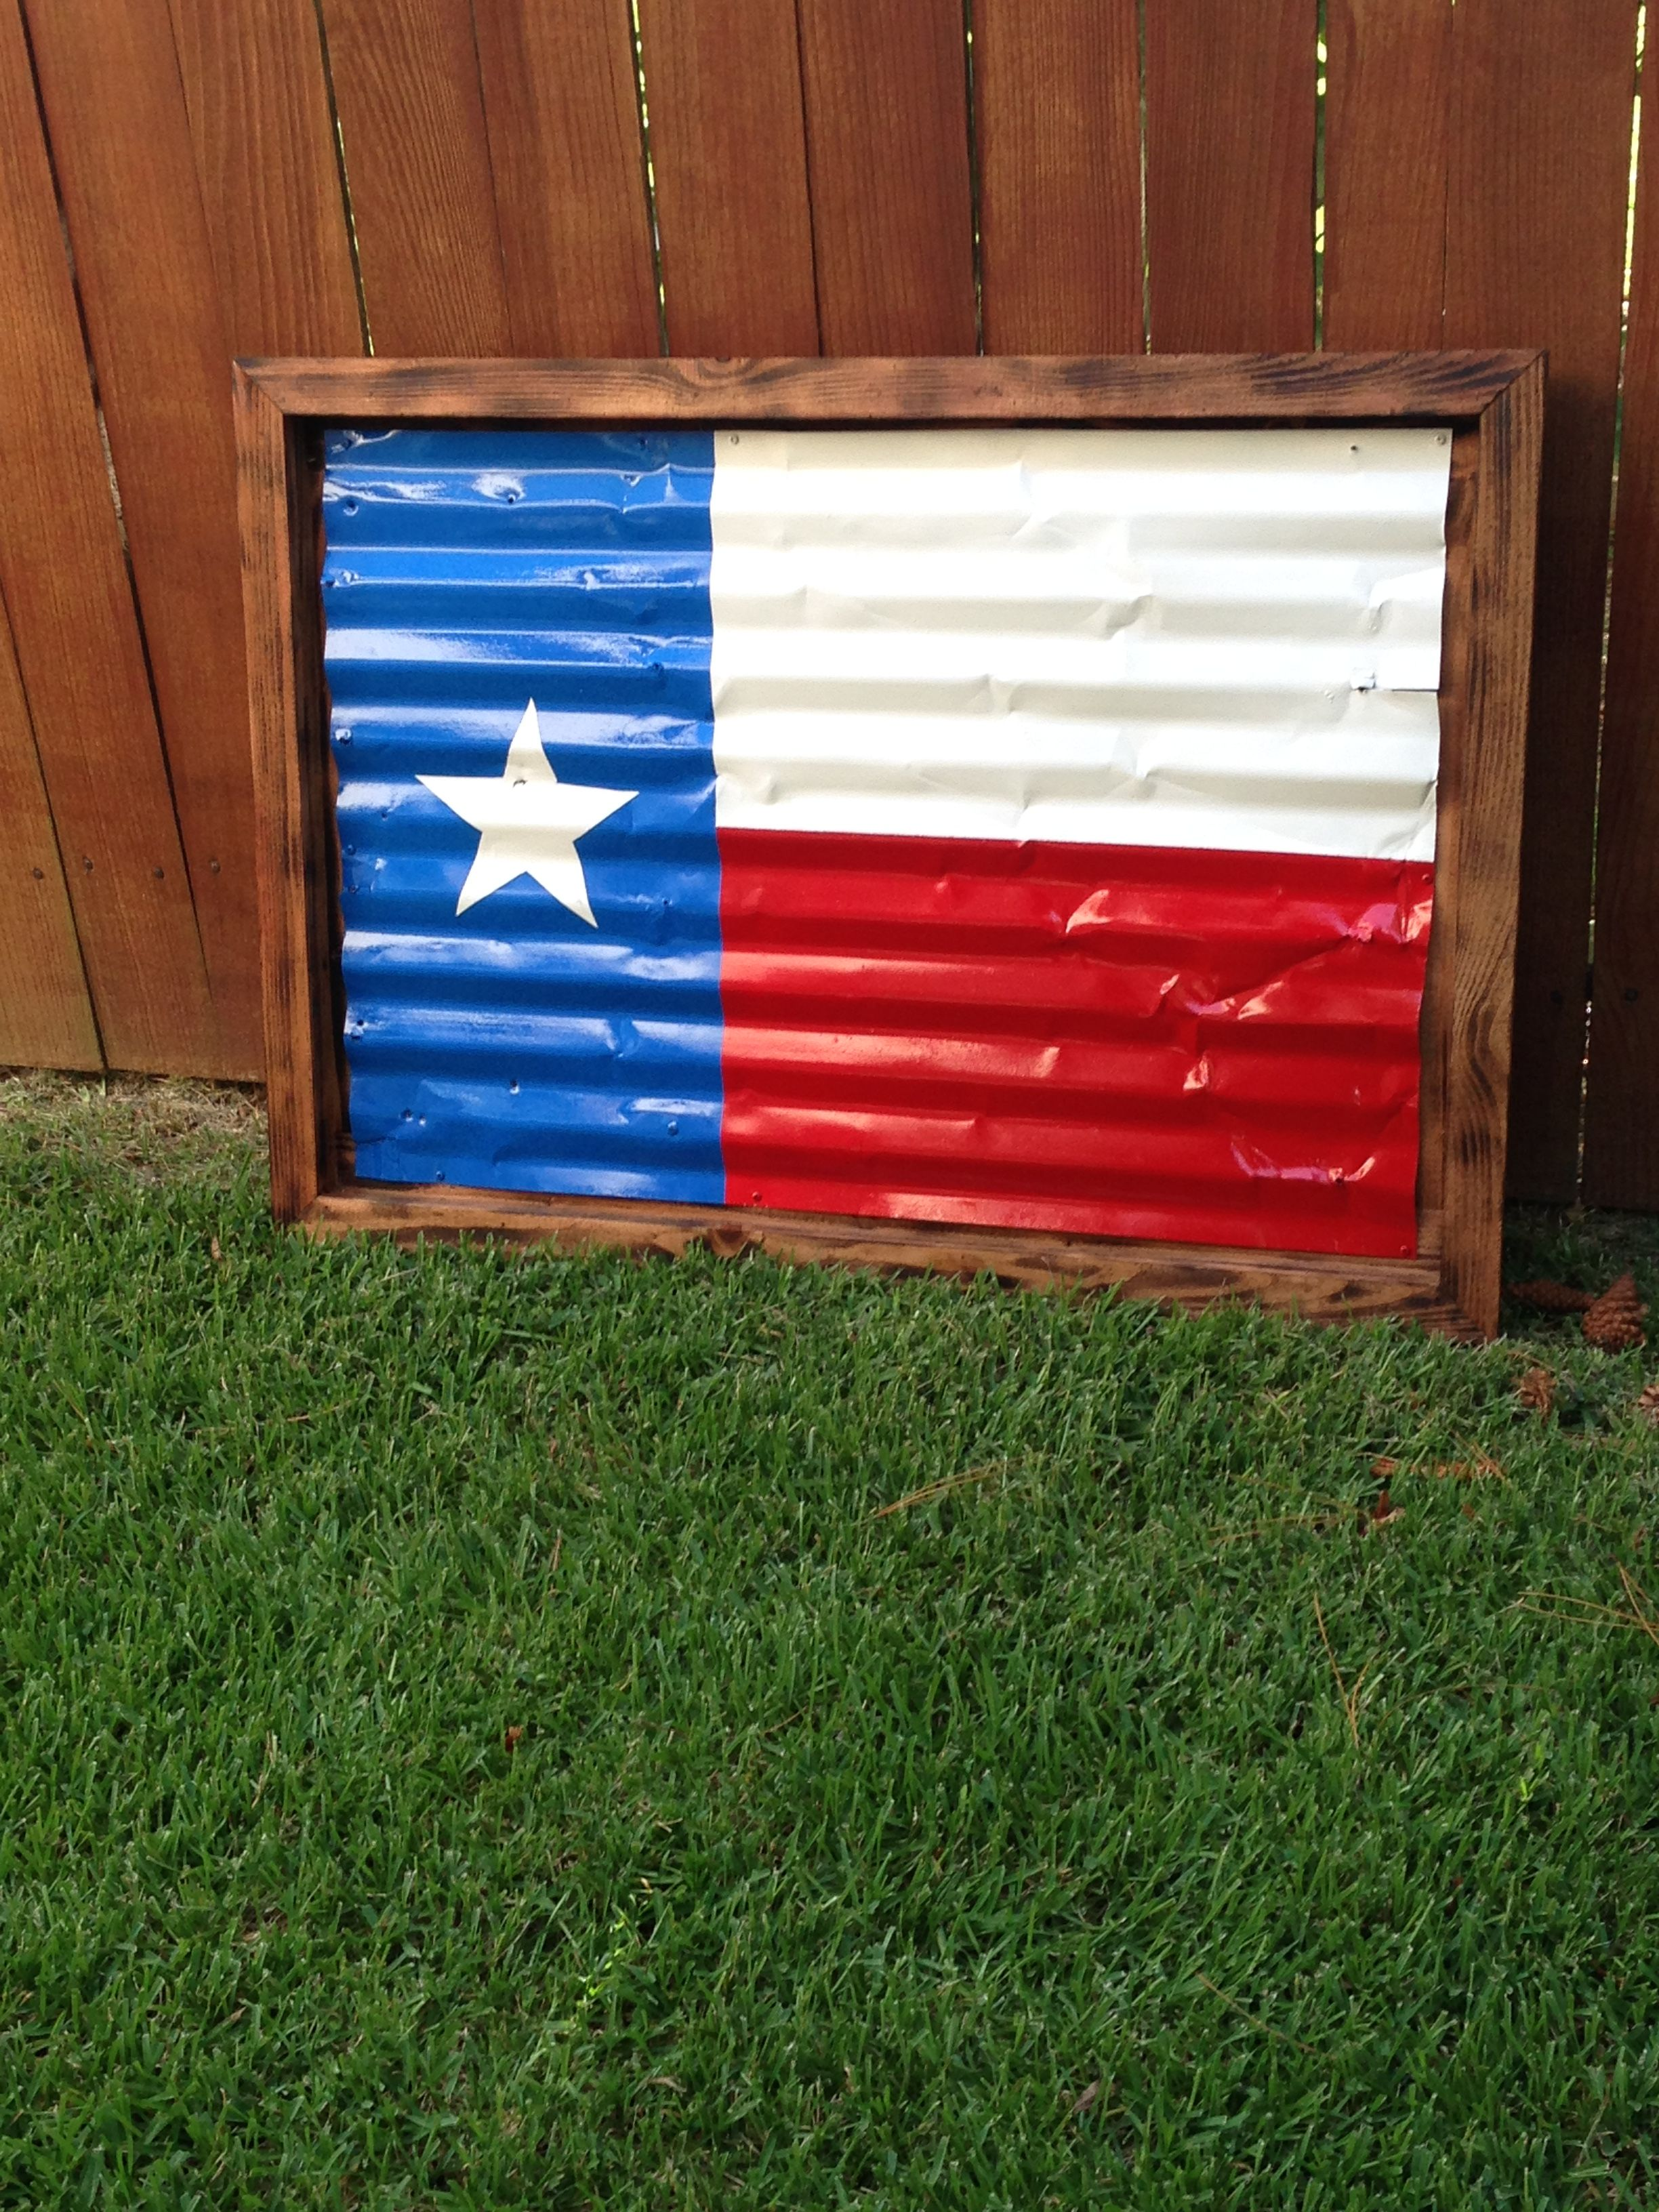 Rustic Texas Flag made from old sheet metal and pine fence pickets.